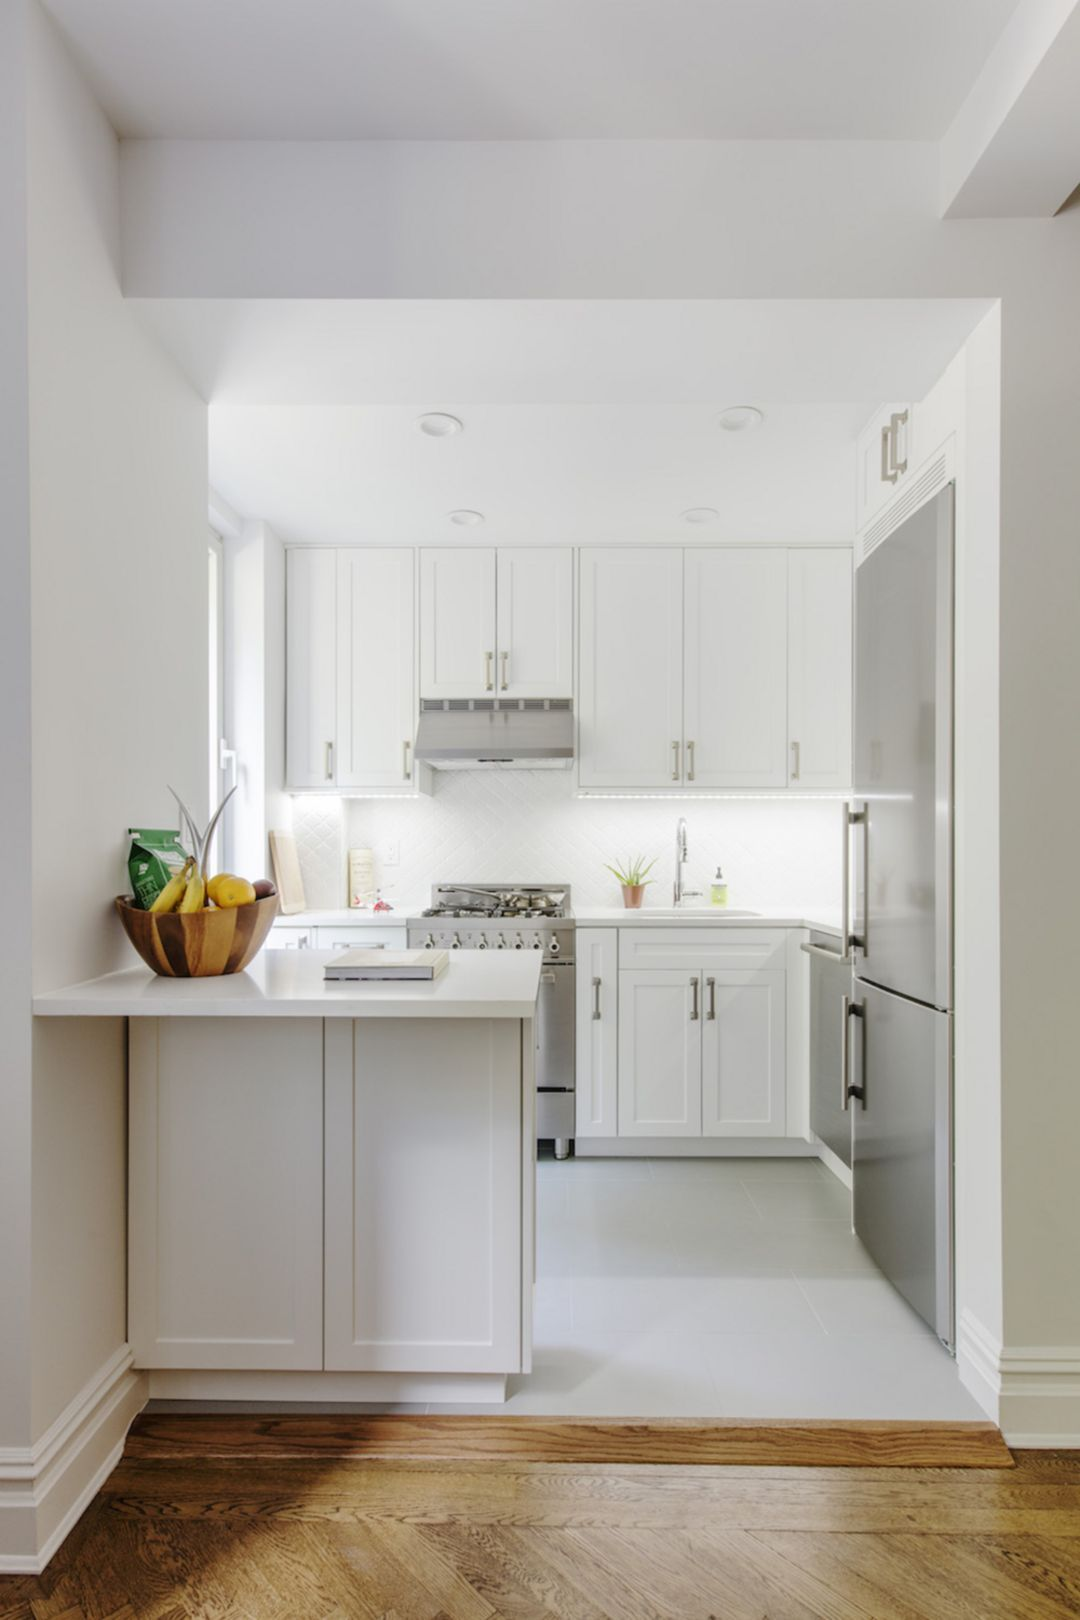 25 Modern And Charming Small Kitchen Ideas To Make It Look More